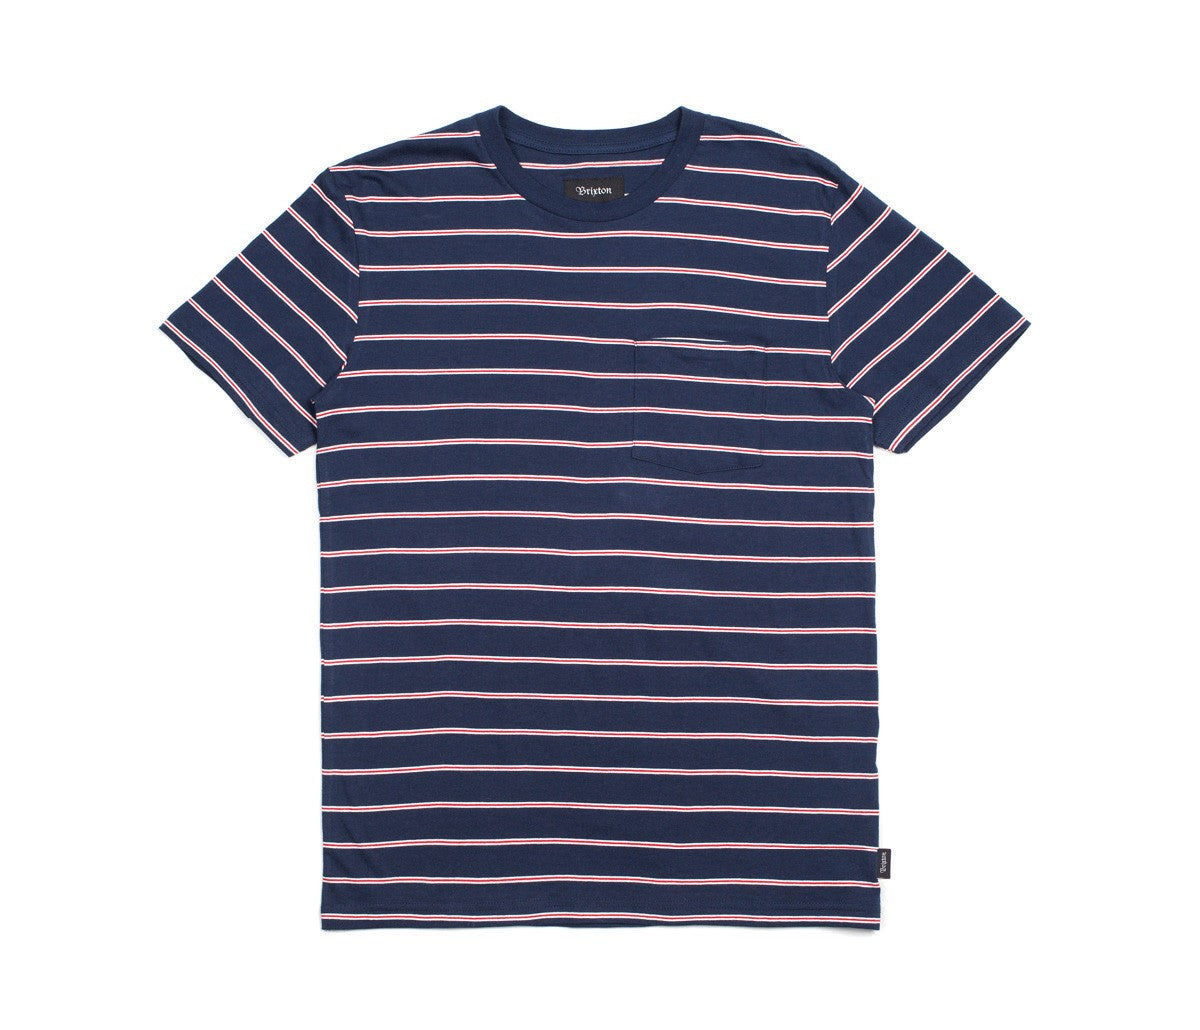 Brixton - Hilt Men's S/S Pocket Knit Tee, White/Navy/Red - The Giant Peach